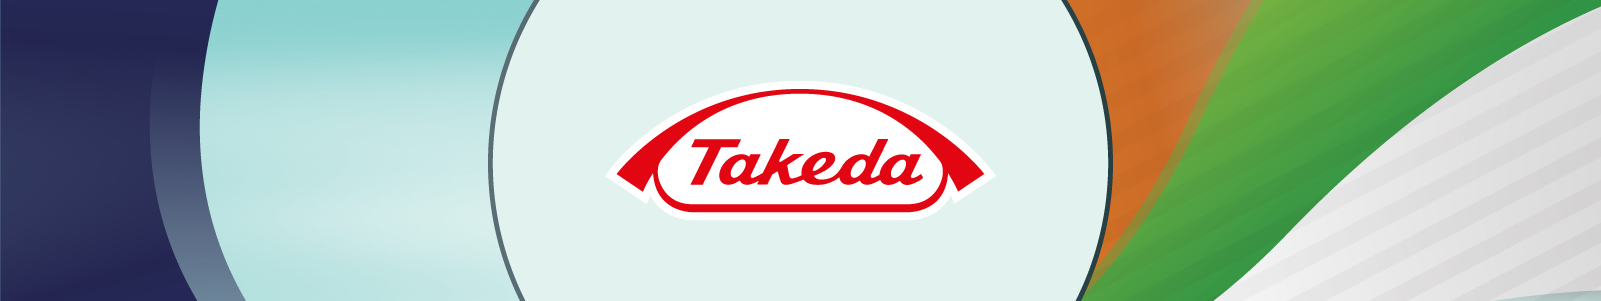 ETED2021-banner-takeda